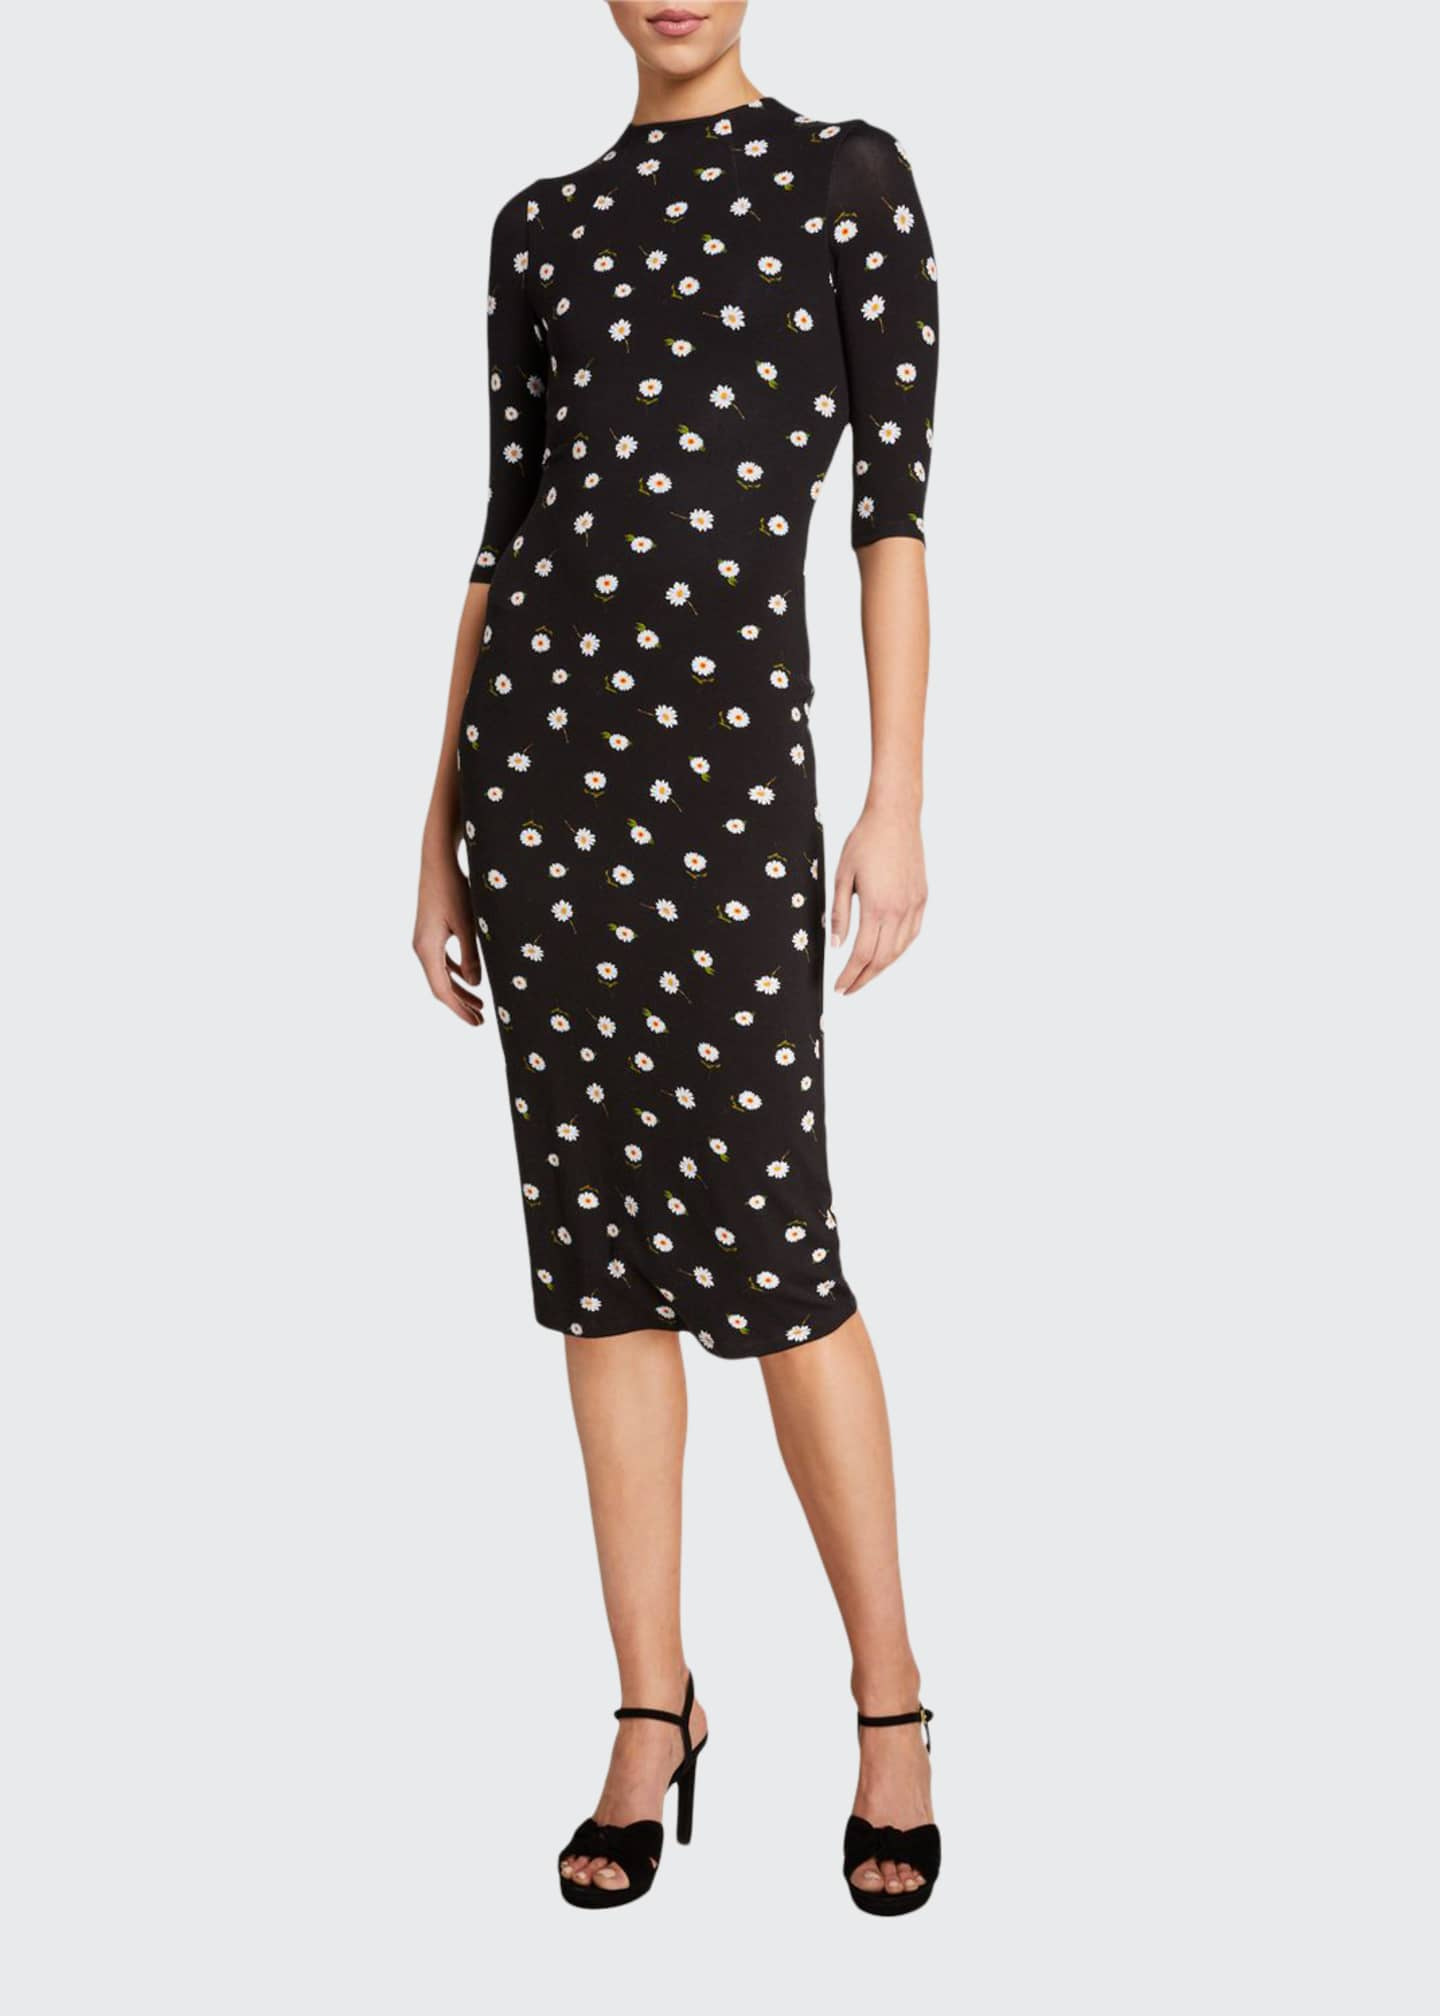 Delora Fitted Mock-Neck Dress